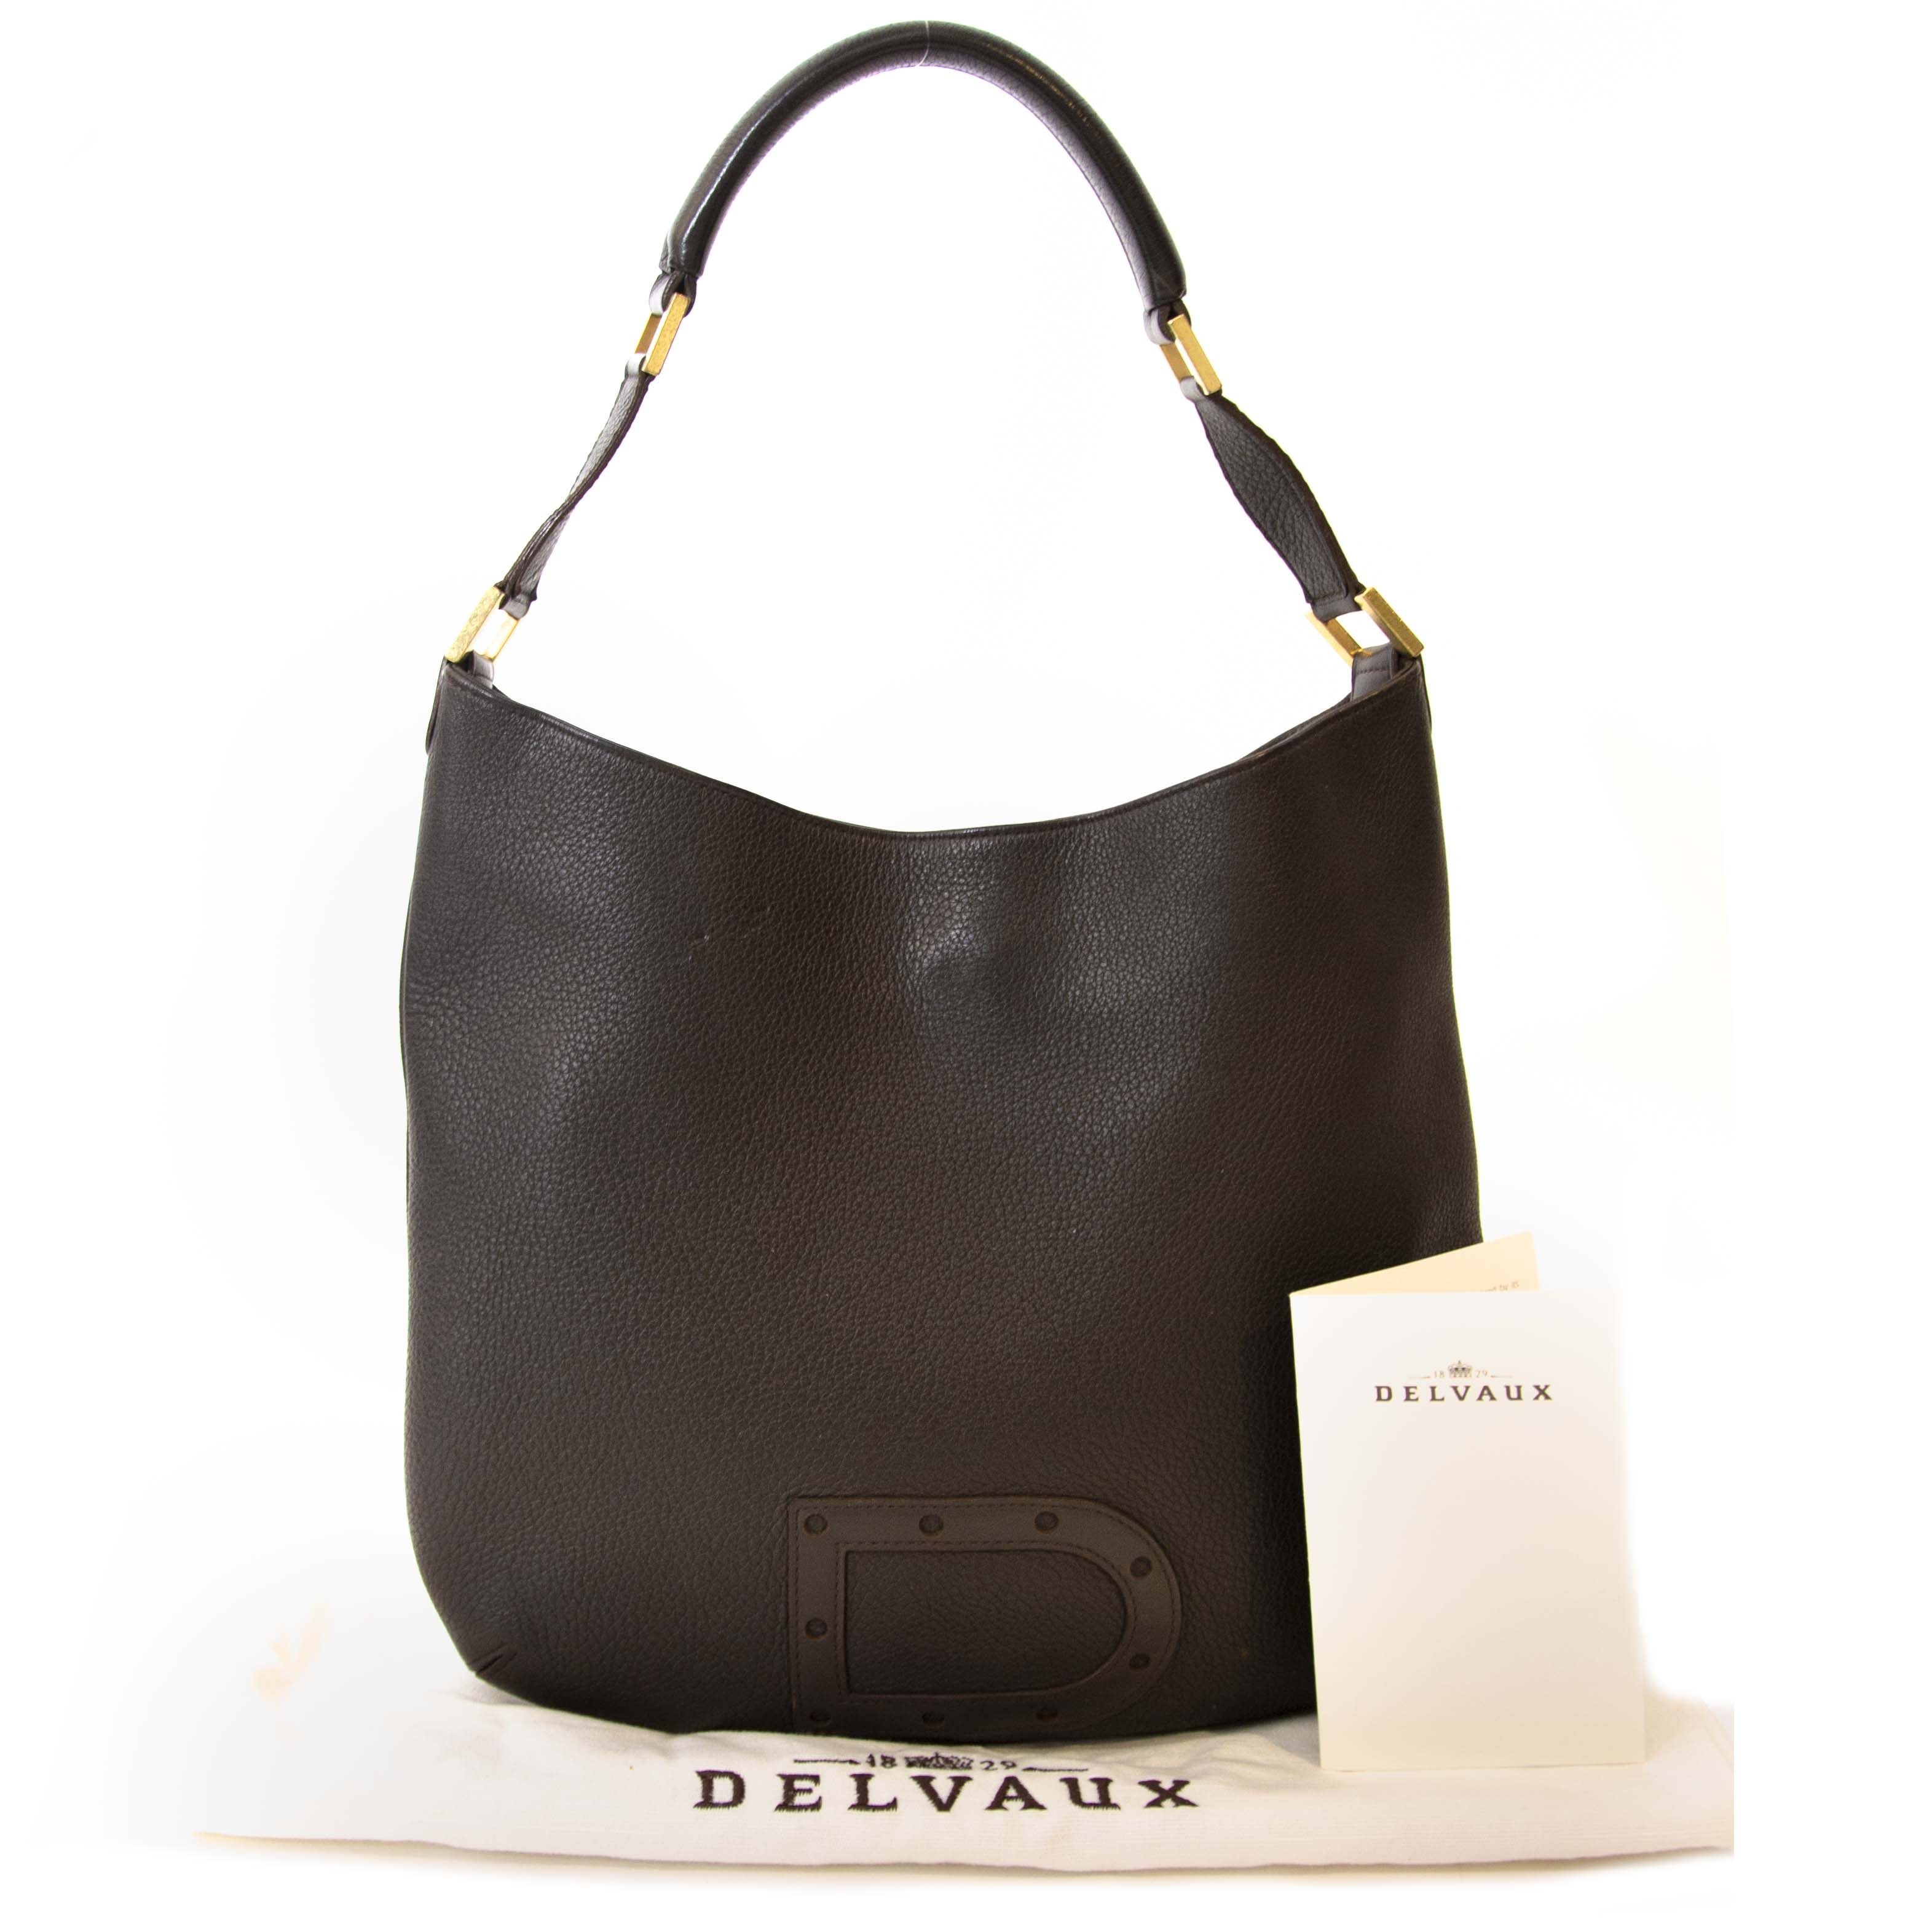 Buy a Delvaux Shoulder bag at LabelLOV vintage webshop at the right price.